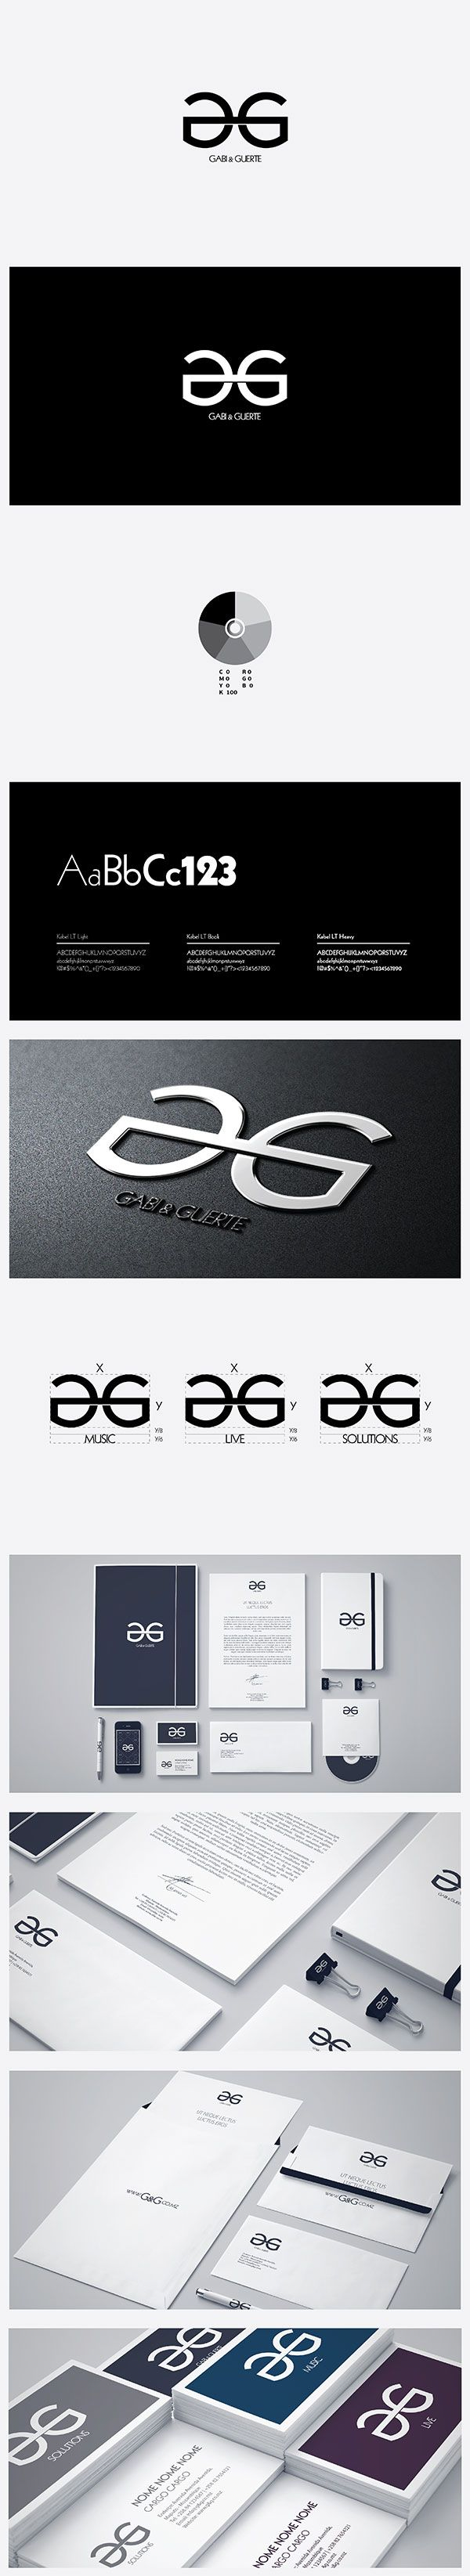 """This is the corporate identity developed for the G&G - GABI & GUERTE Brand. The client requested for a simple yet bold visual identity wich used monocromatic colors and a siymbol incorporating the letter """"G"""". In addition, color variations and diferentiation for the various areas of business were also requested.   Enjoy!"""